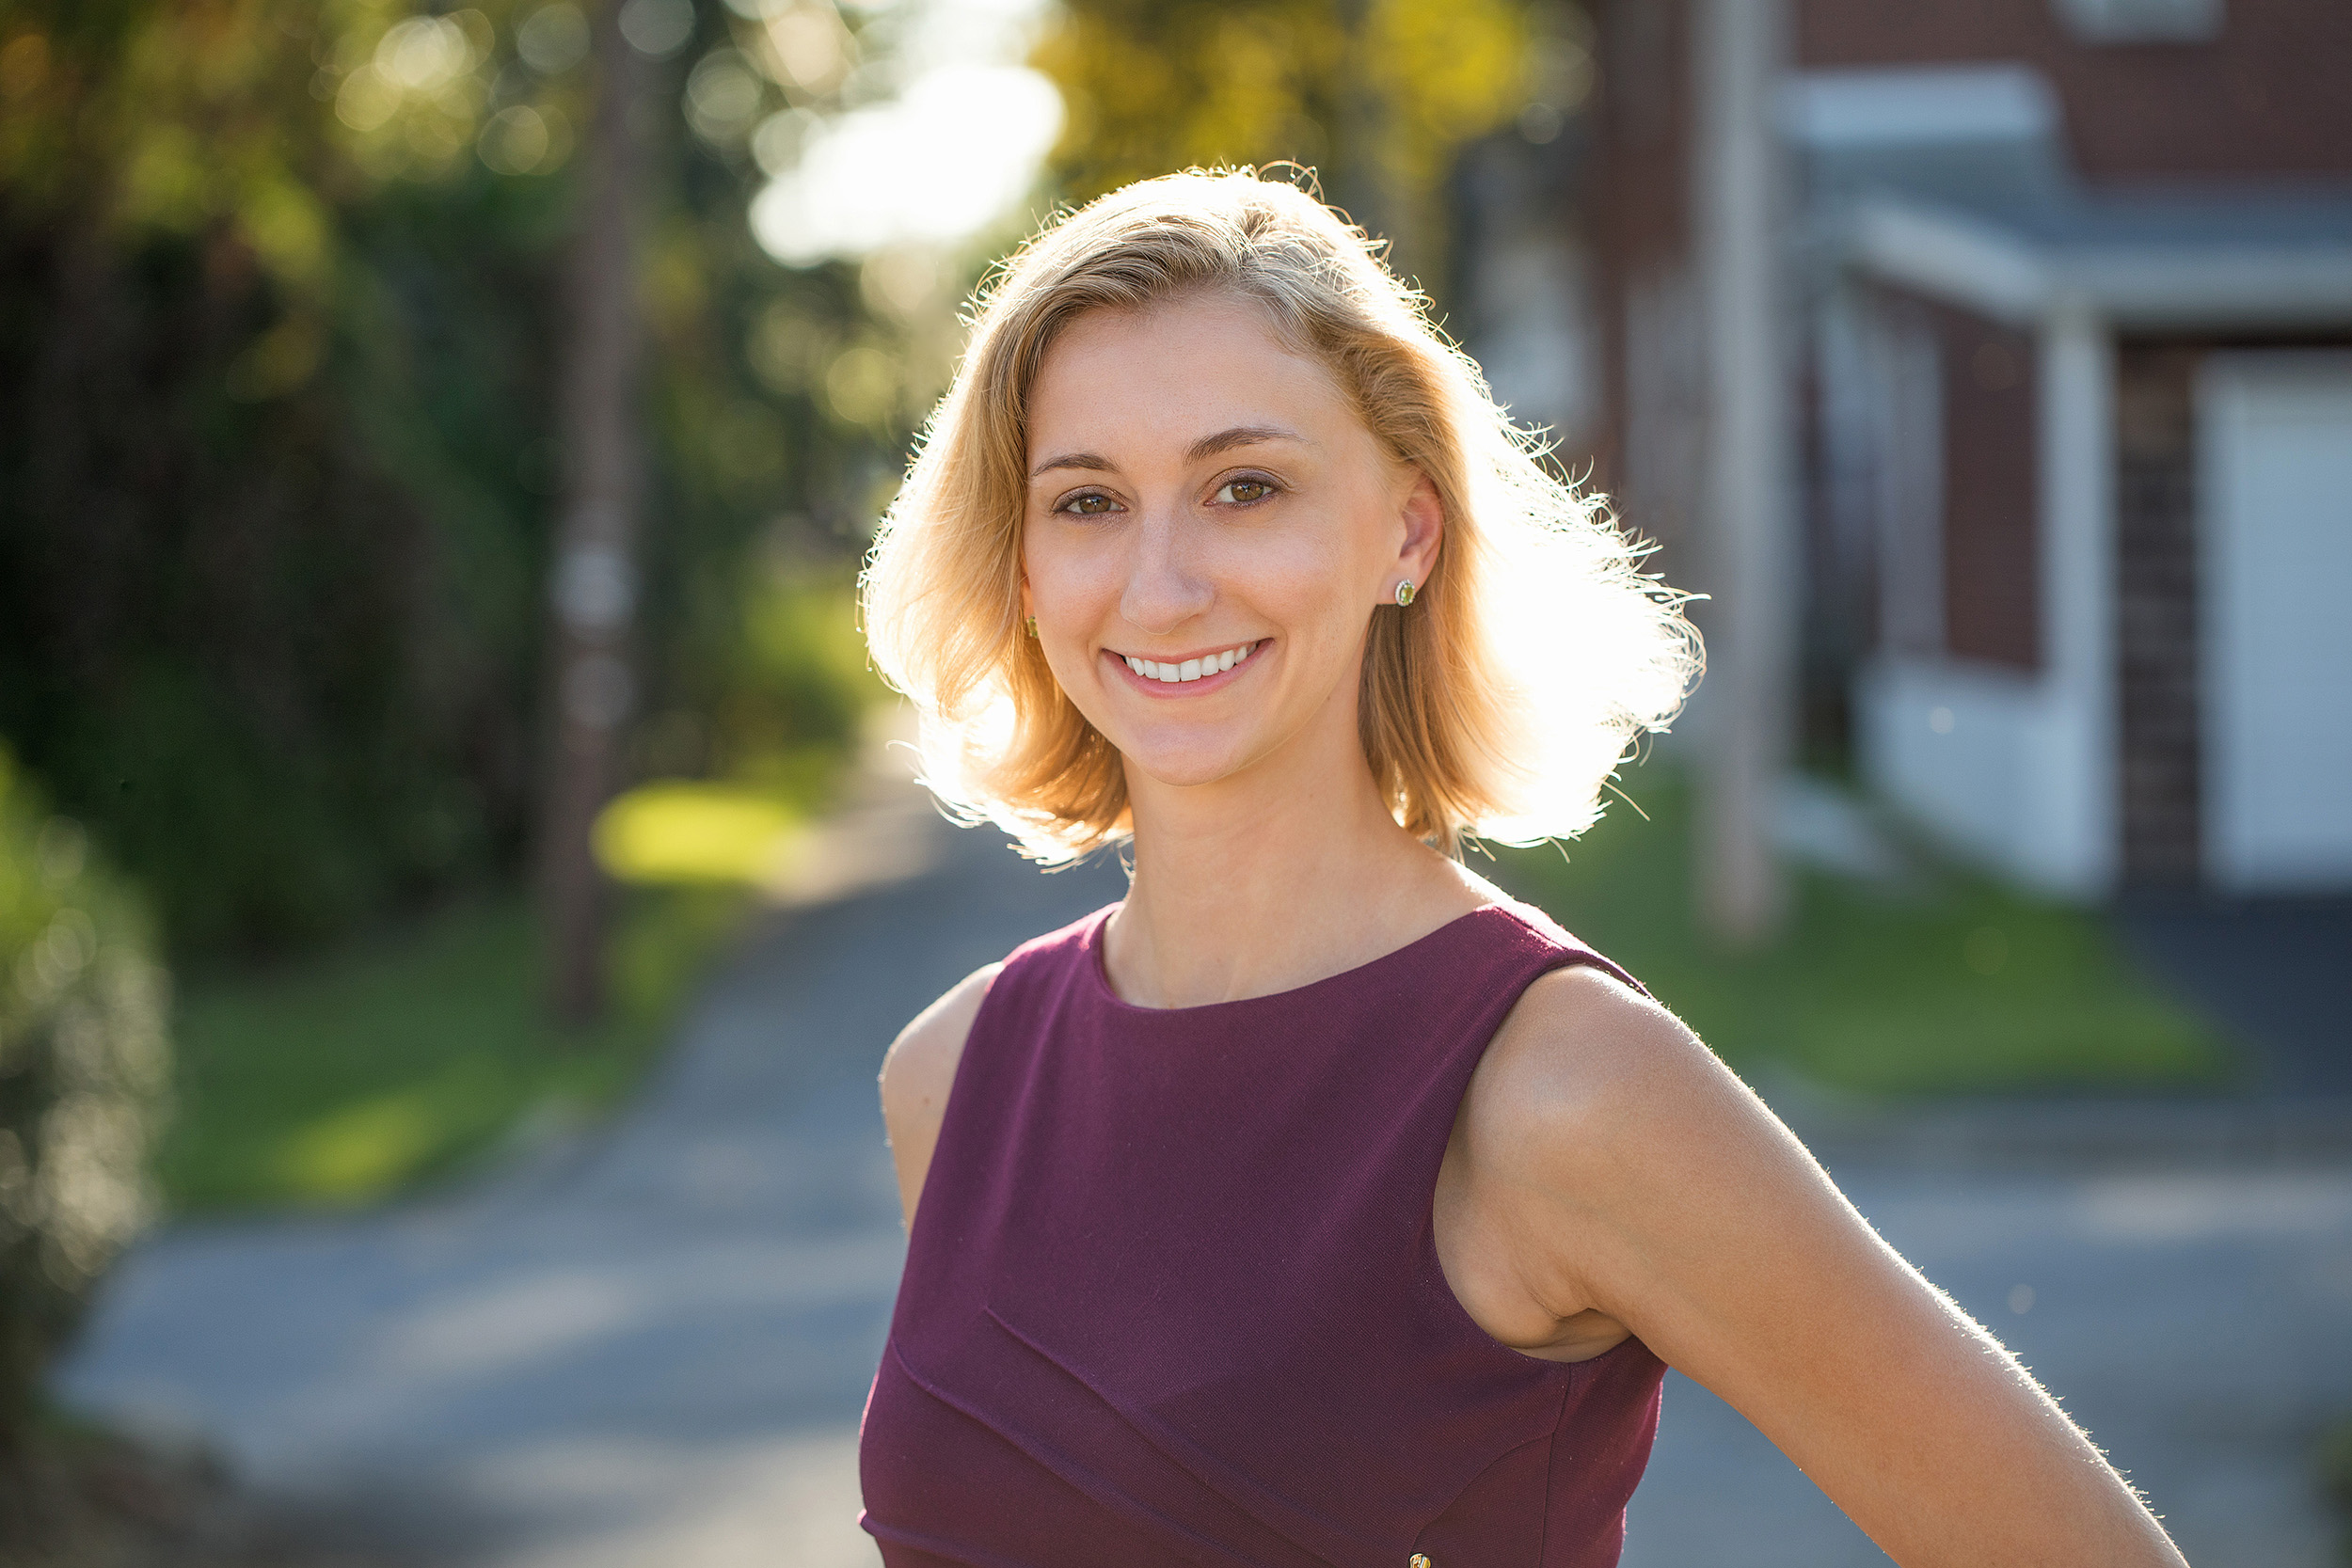 Headshots & Professional Portraits - Be it a new job or new position, a new headshot will refresh your look.This is wonderful for the individual or for a company.